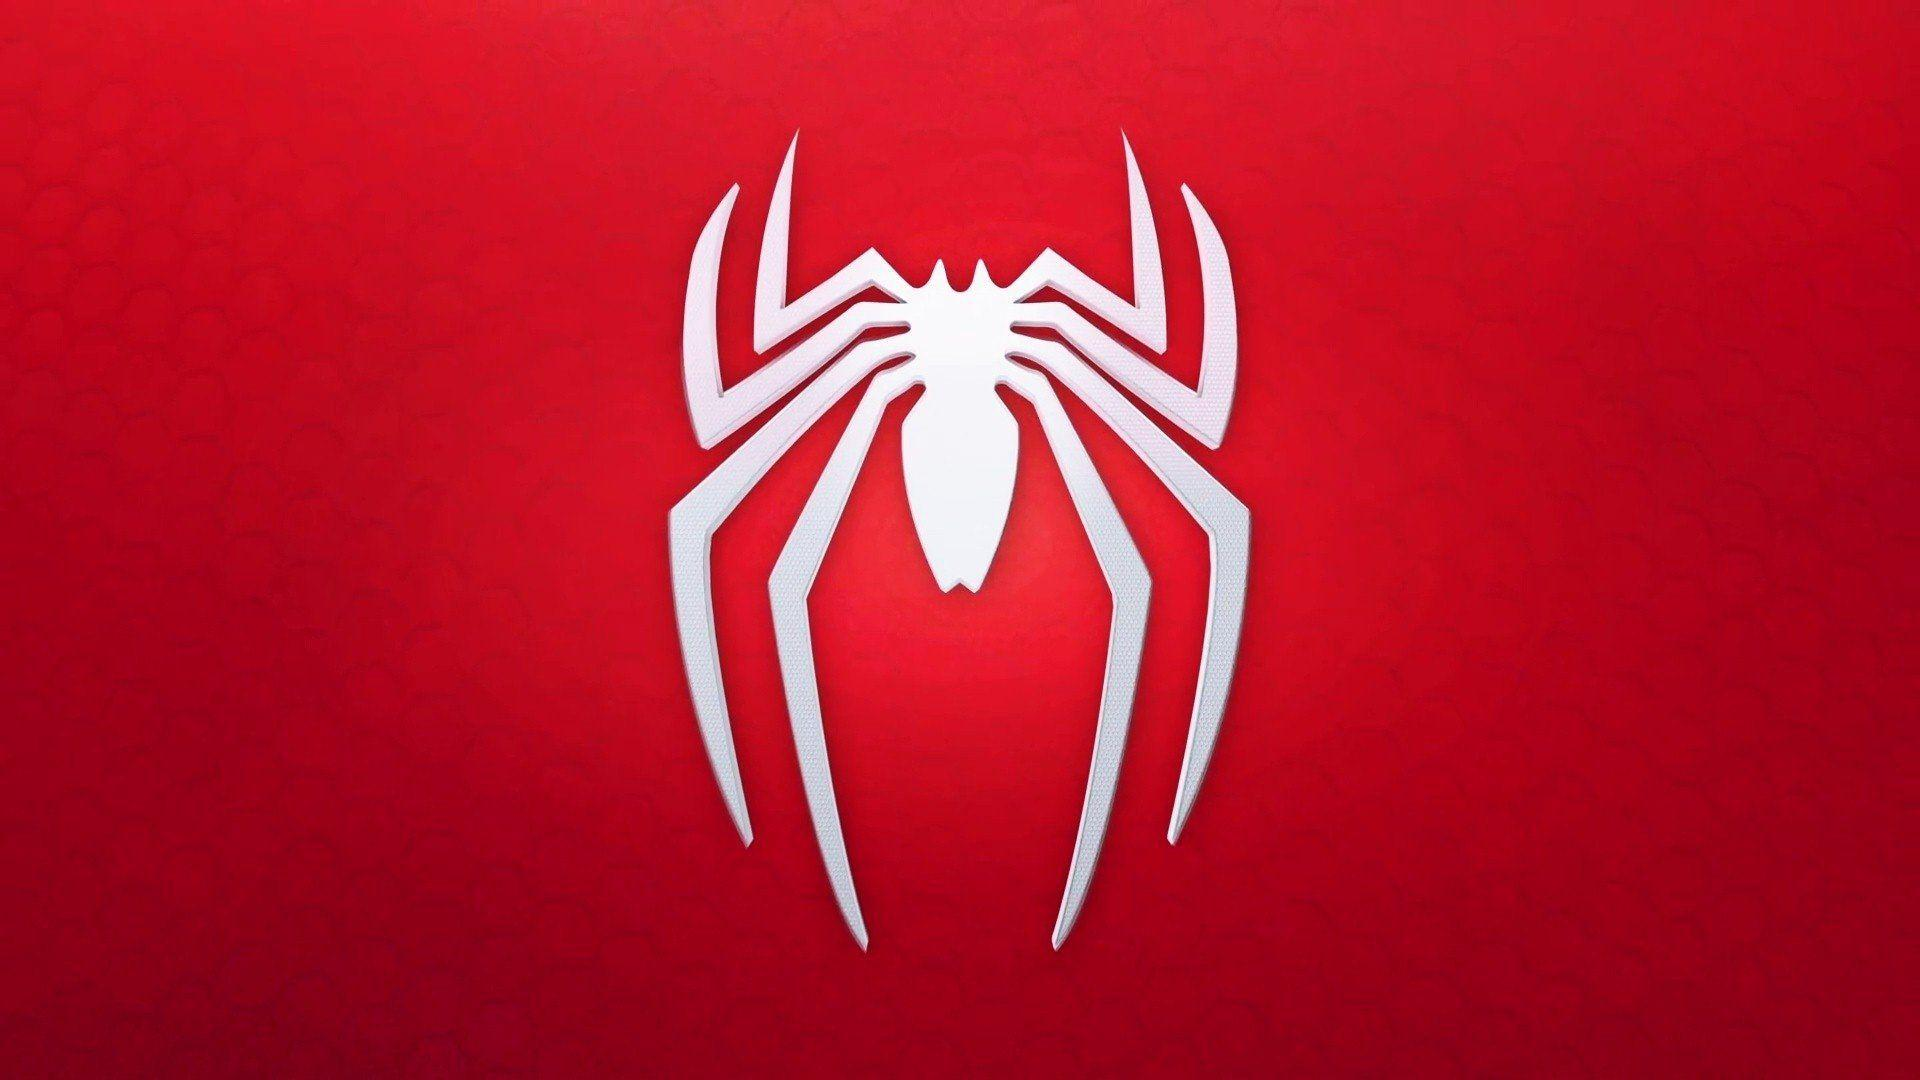 Spider Man Ps4 Wallpapers Wallpaper Cave